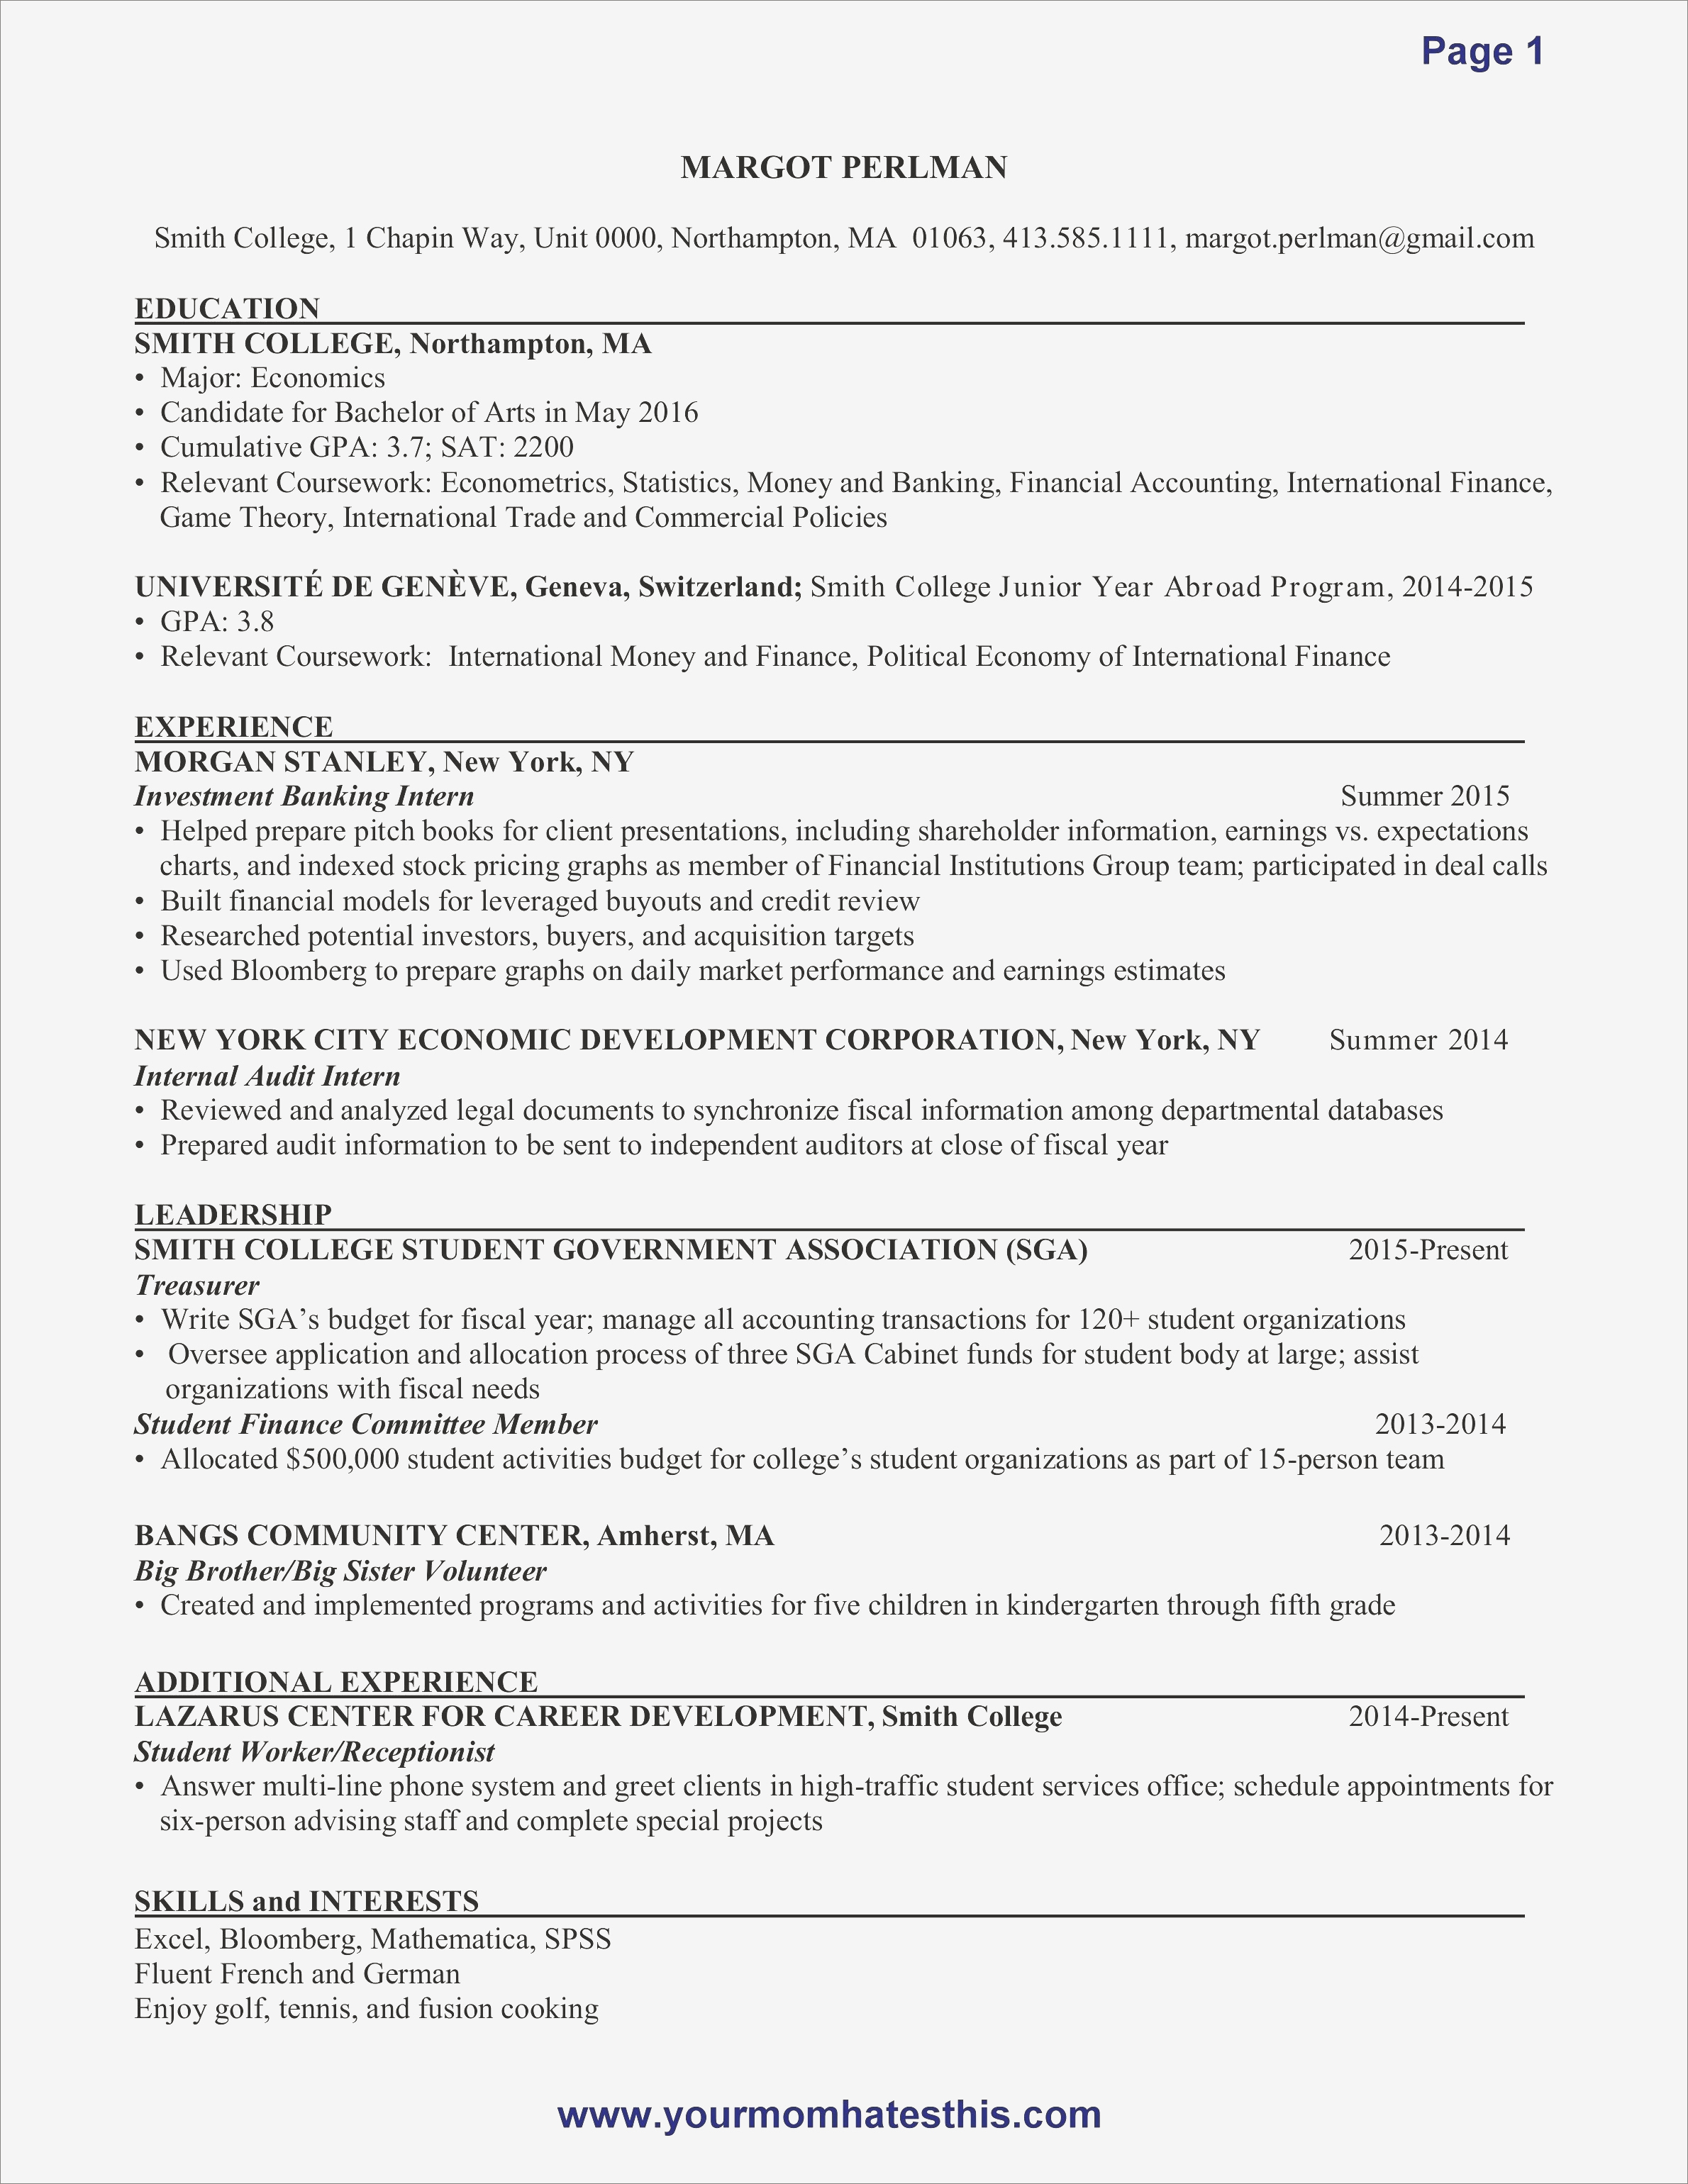 Resume Template for College Freshmen - College Freshman Resume Samples